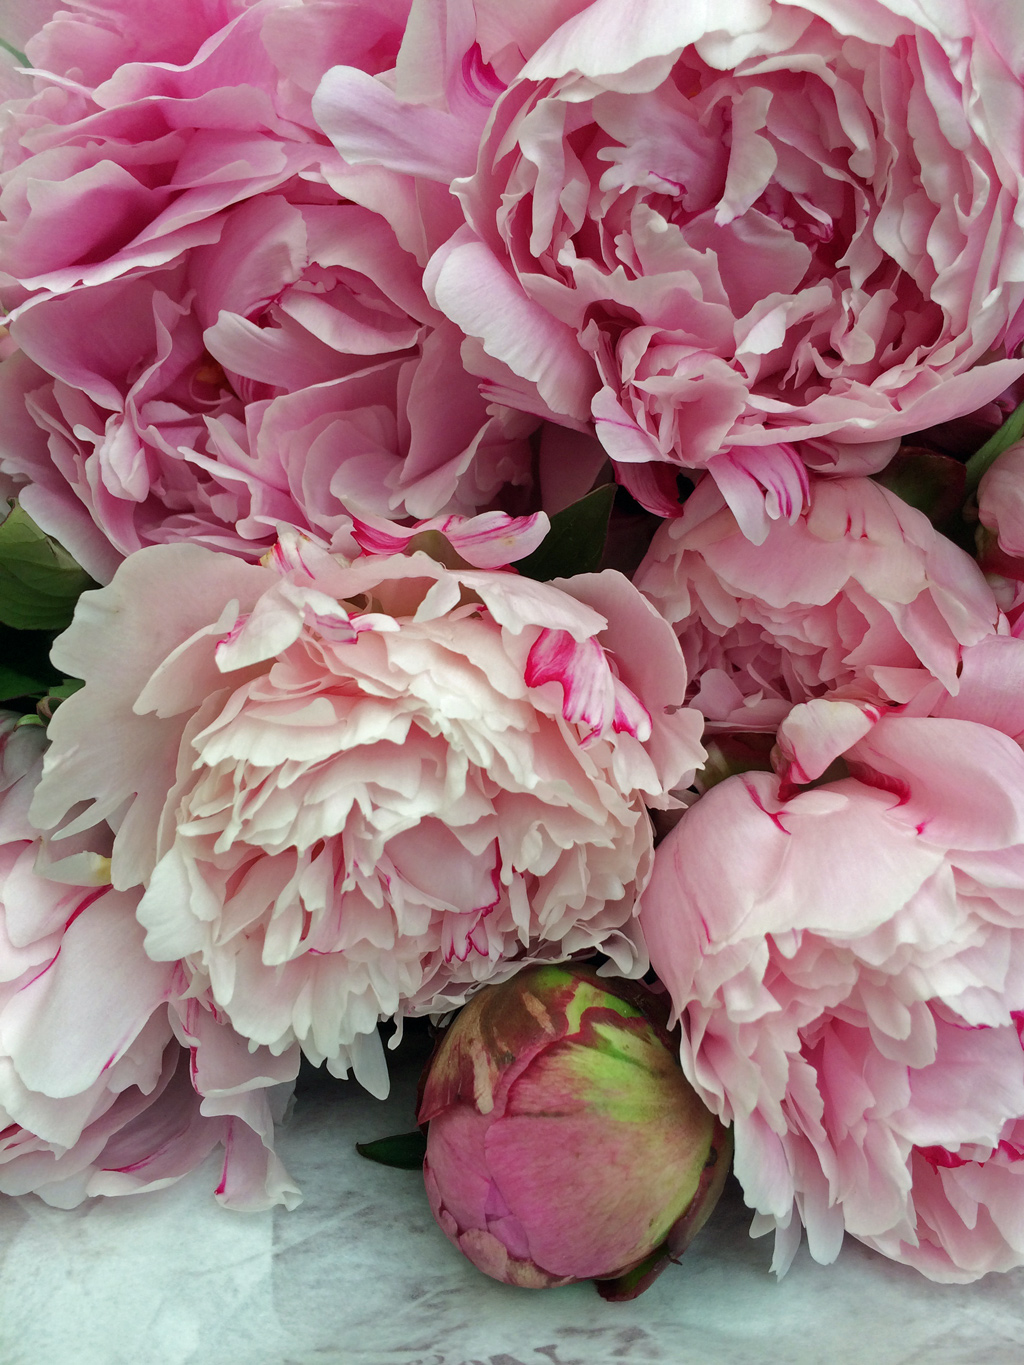 Peony season clip art royalty free library Peony season is here! – Susan Rushton clip art royalty free library